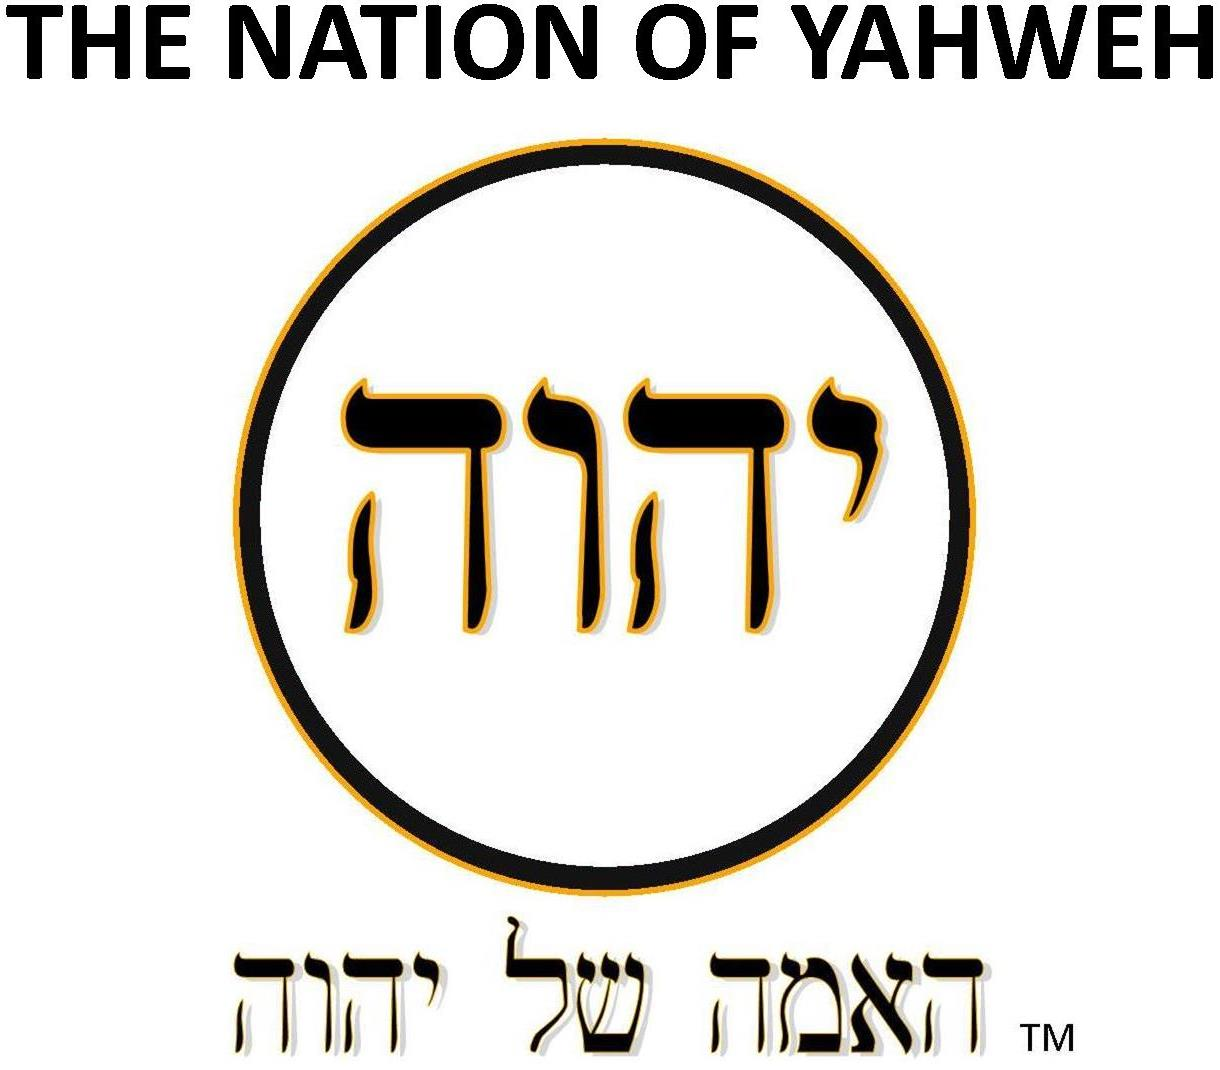 THE NATION OF YAHWEH